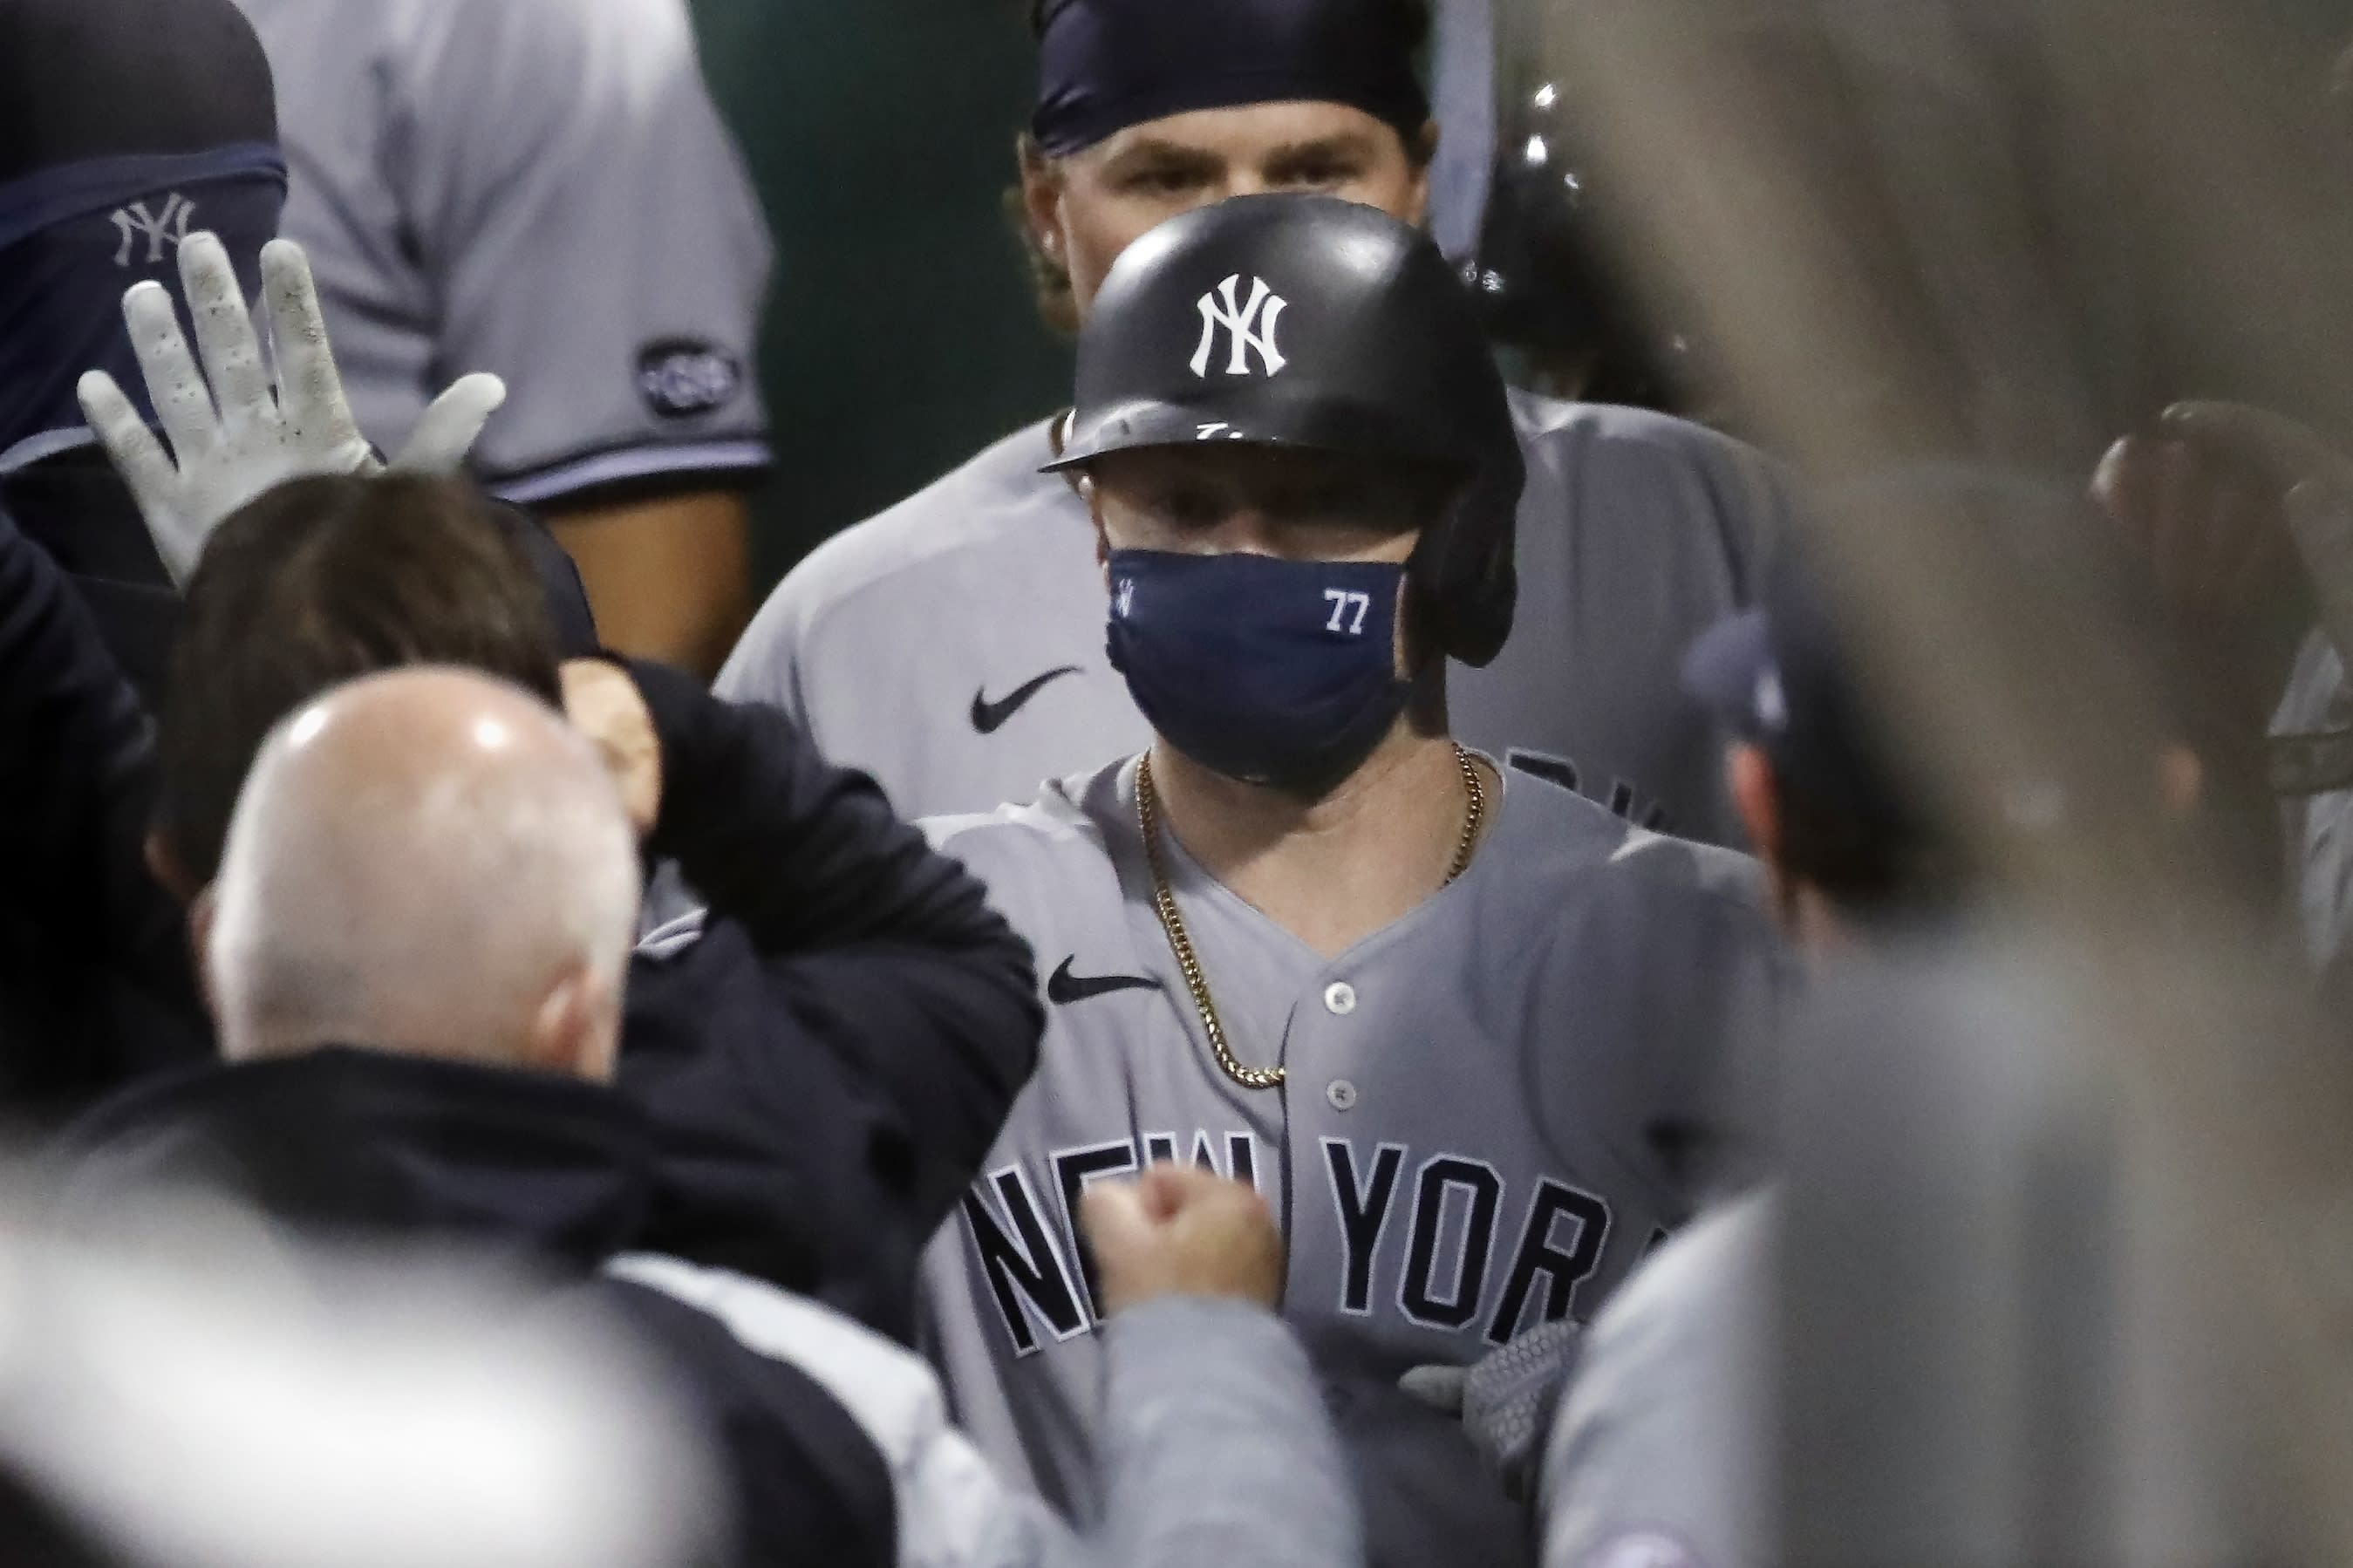 New York Yankees' Clint Frazier (77) celebrates his two-run home run that also drove in Luke Voit, behind, during the fifth inning of a baseball game against the Boston Red Sox, Saturday, Sept. 19, 2020, in Boston. (AP Photo/Michael Dwyer)